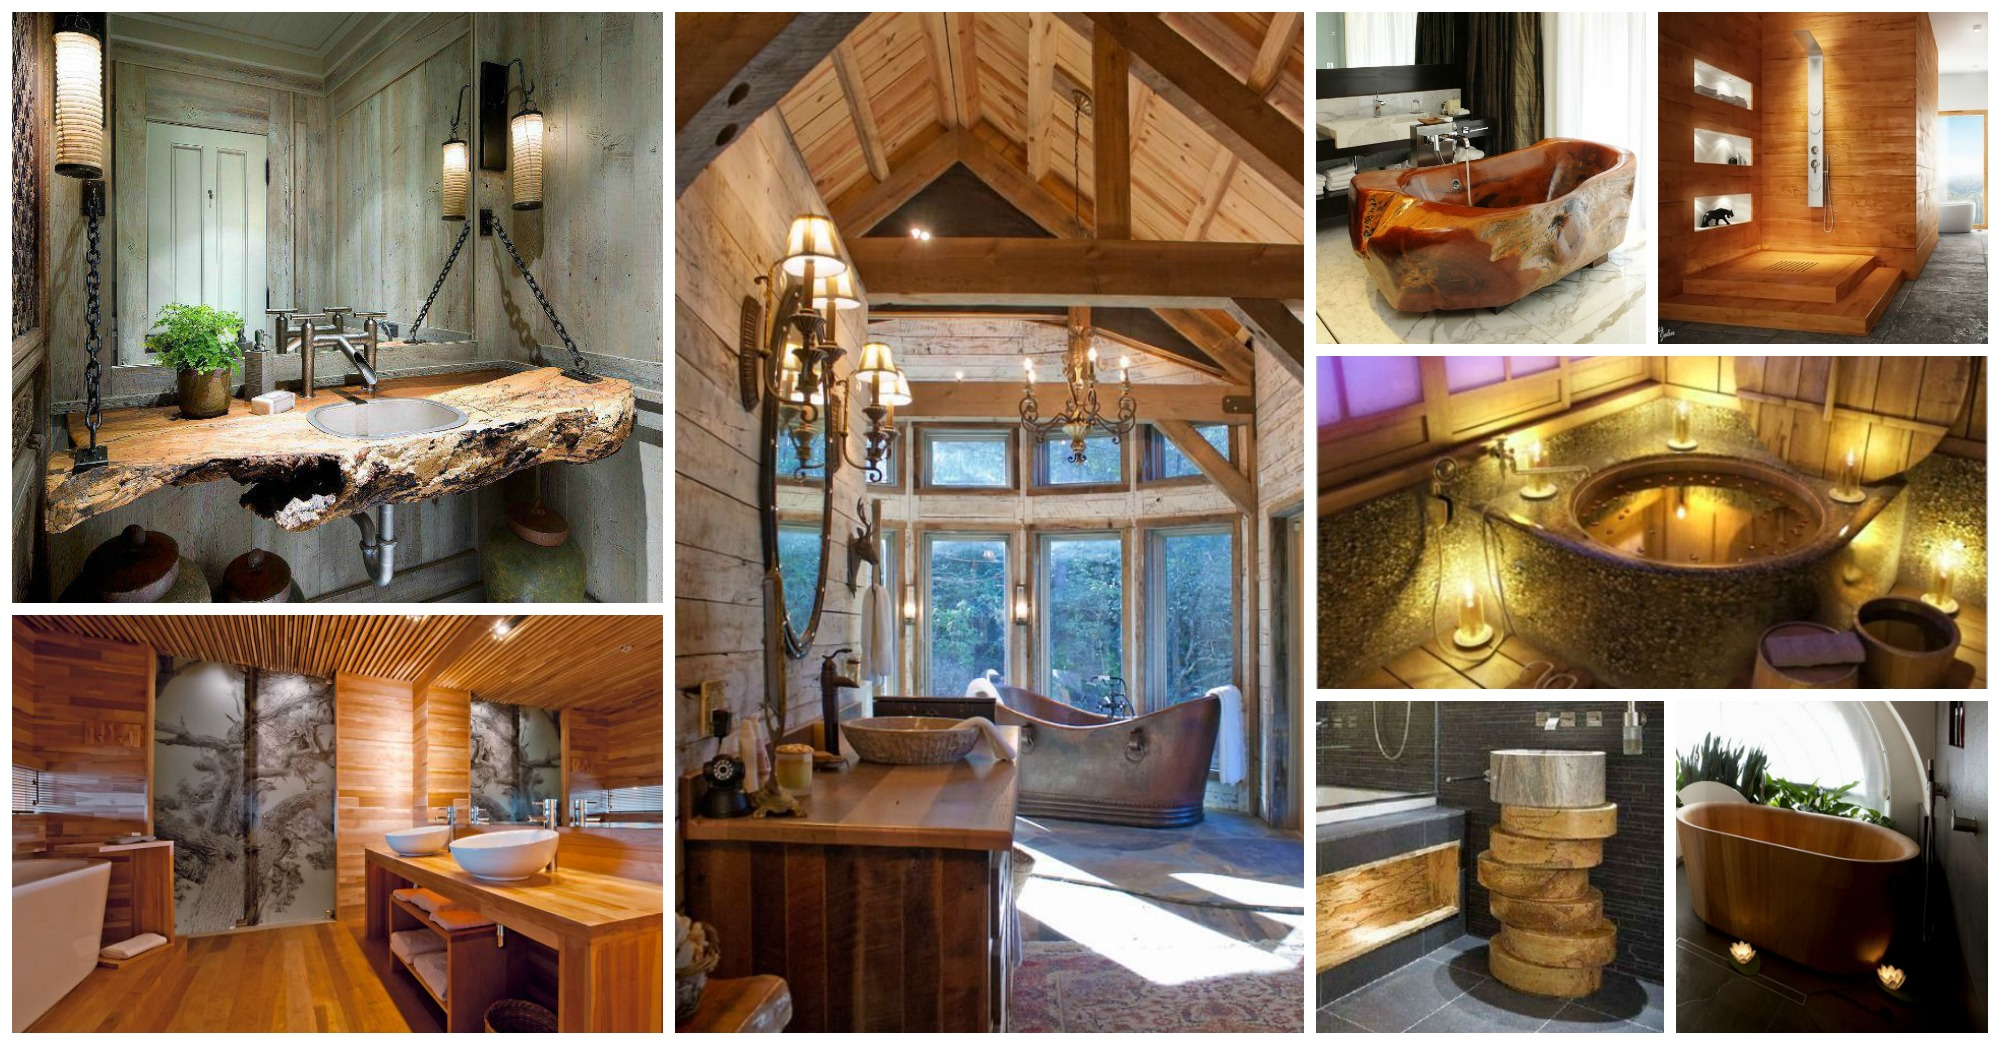 The Most Amazing Wooden Bathroom Ideas That Will Catch